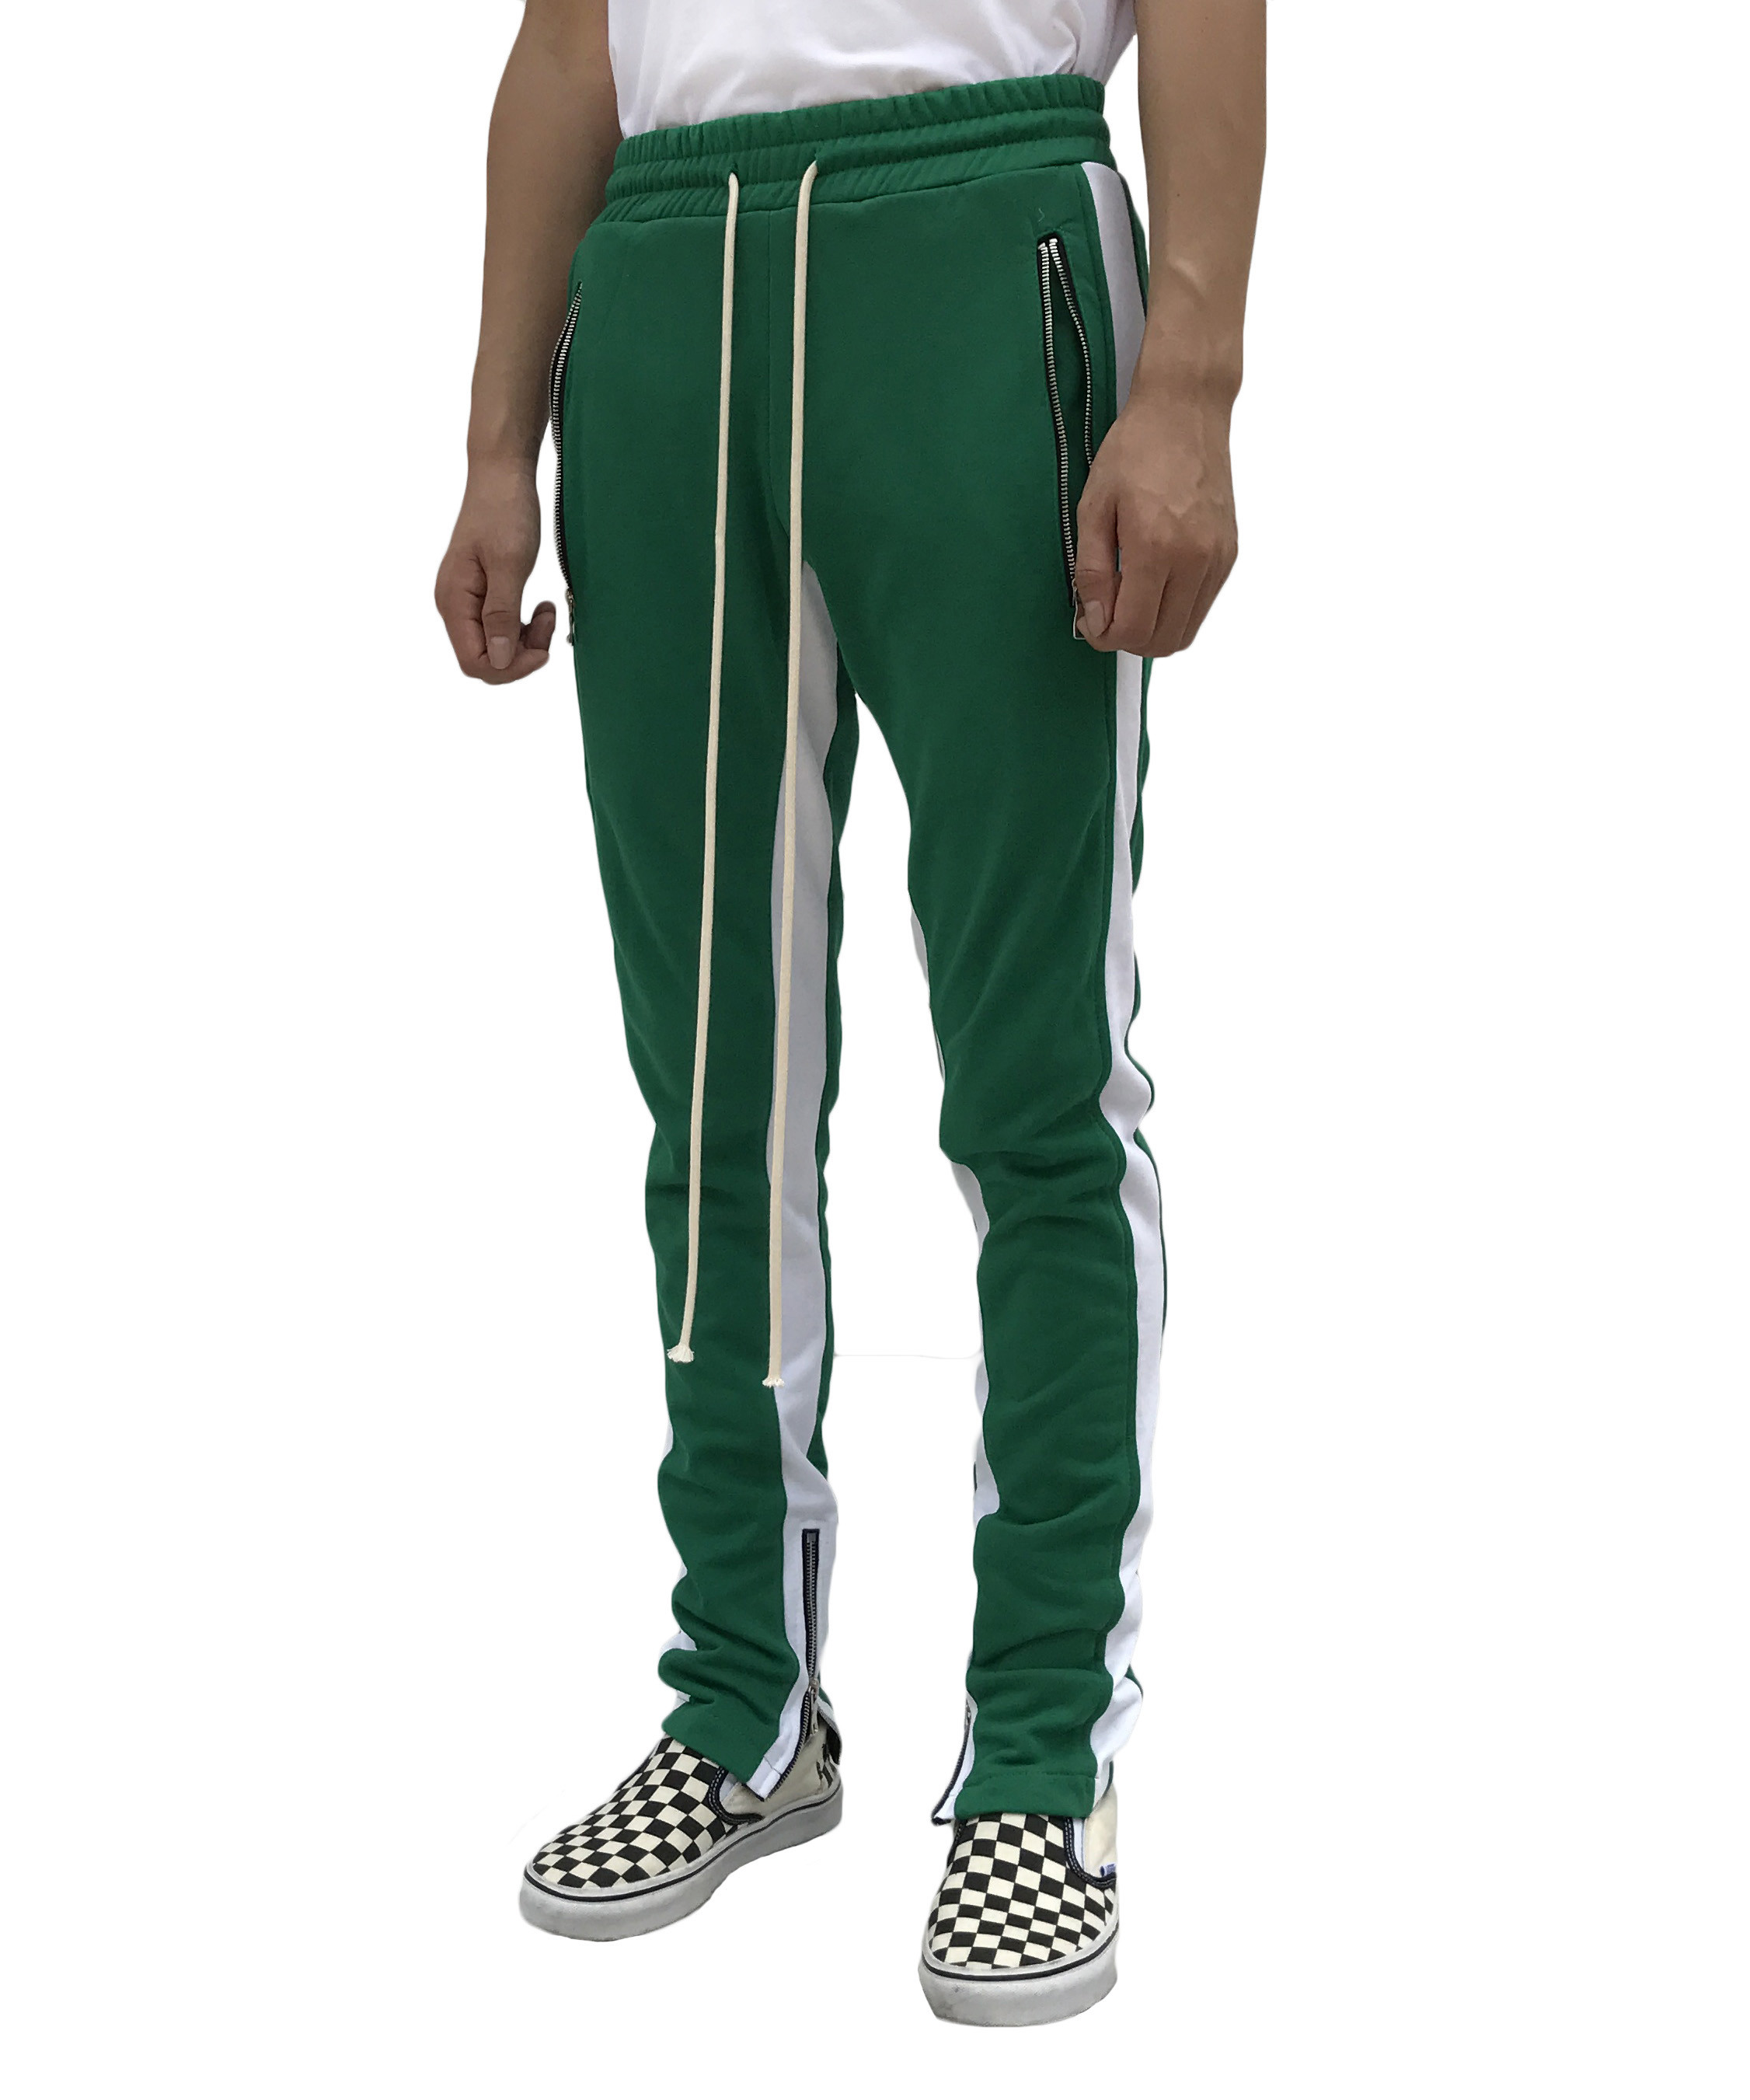 Double Striped Track Pants - Green